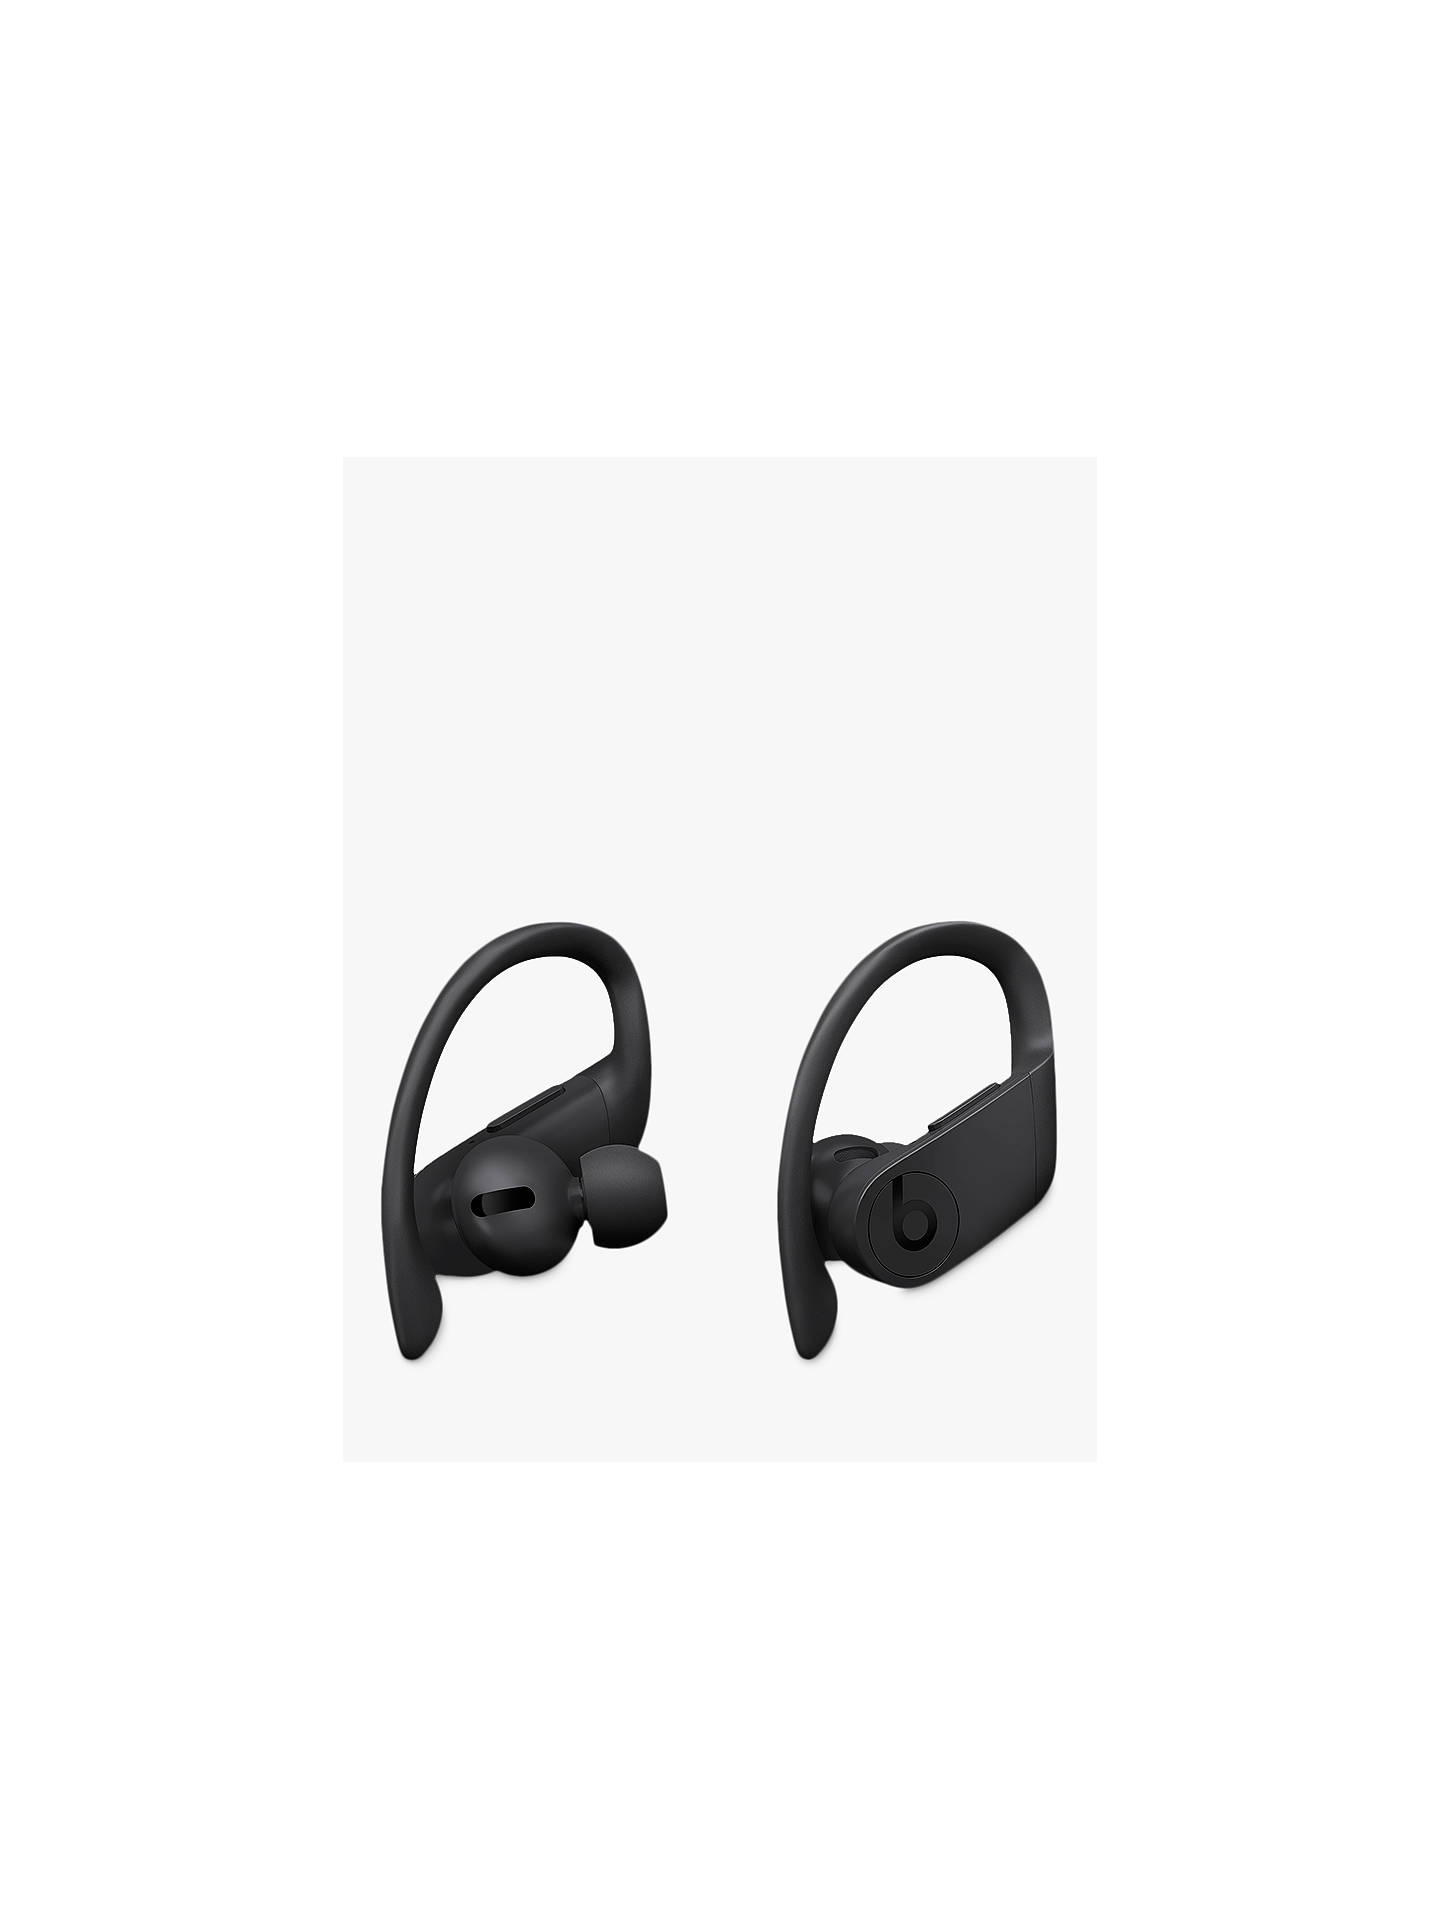 Buy Powerbeats Pro True Wireless Bluetooth In-Ear Sport Headphones with Mic/Remote, Black Online at johnlewis.com